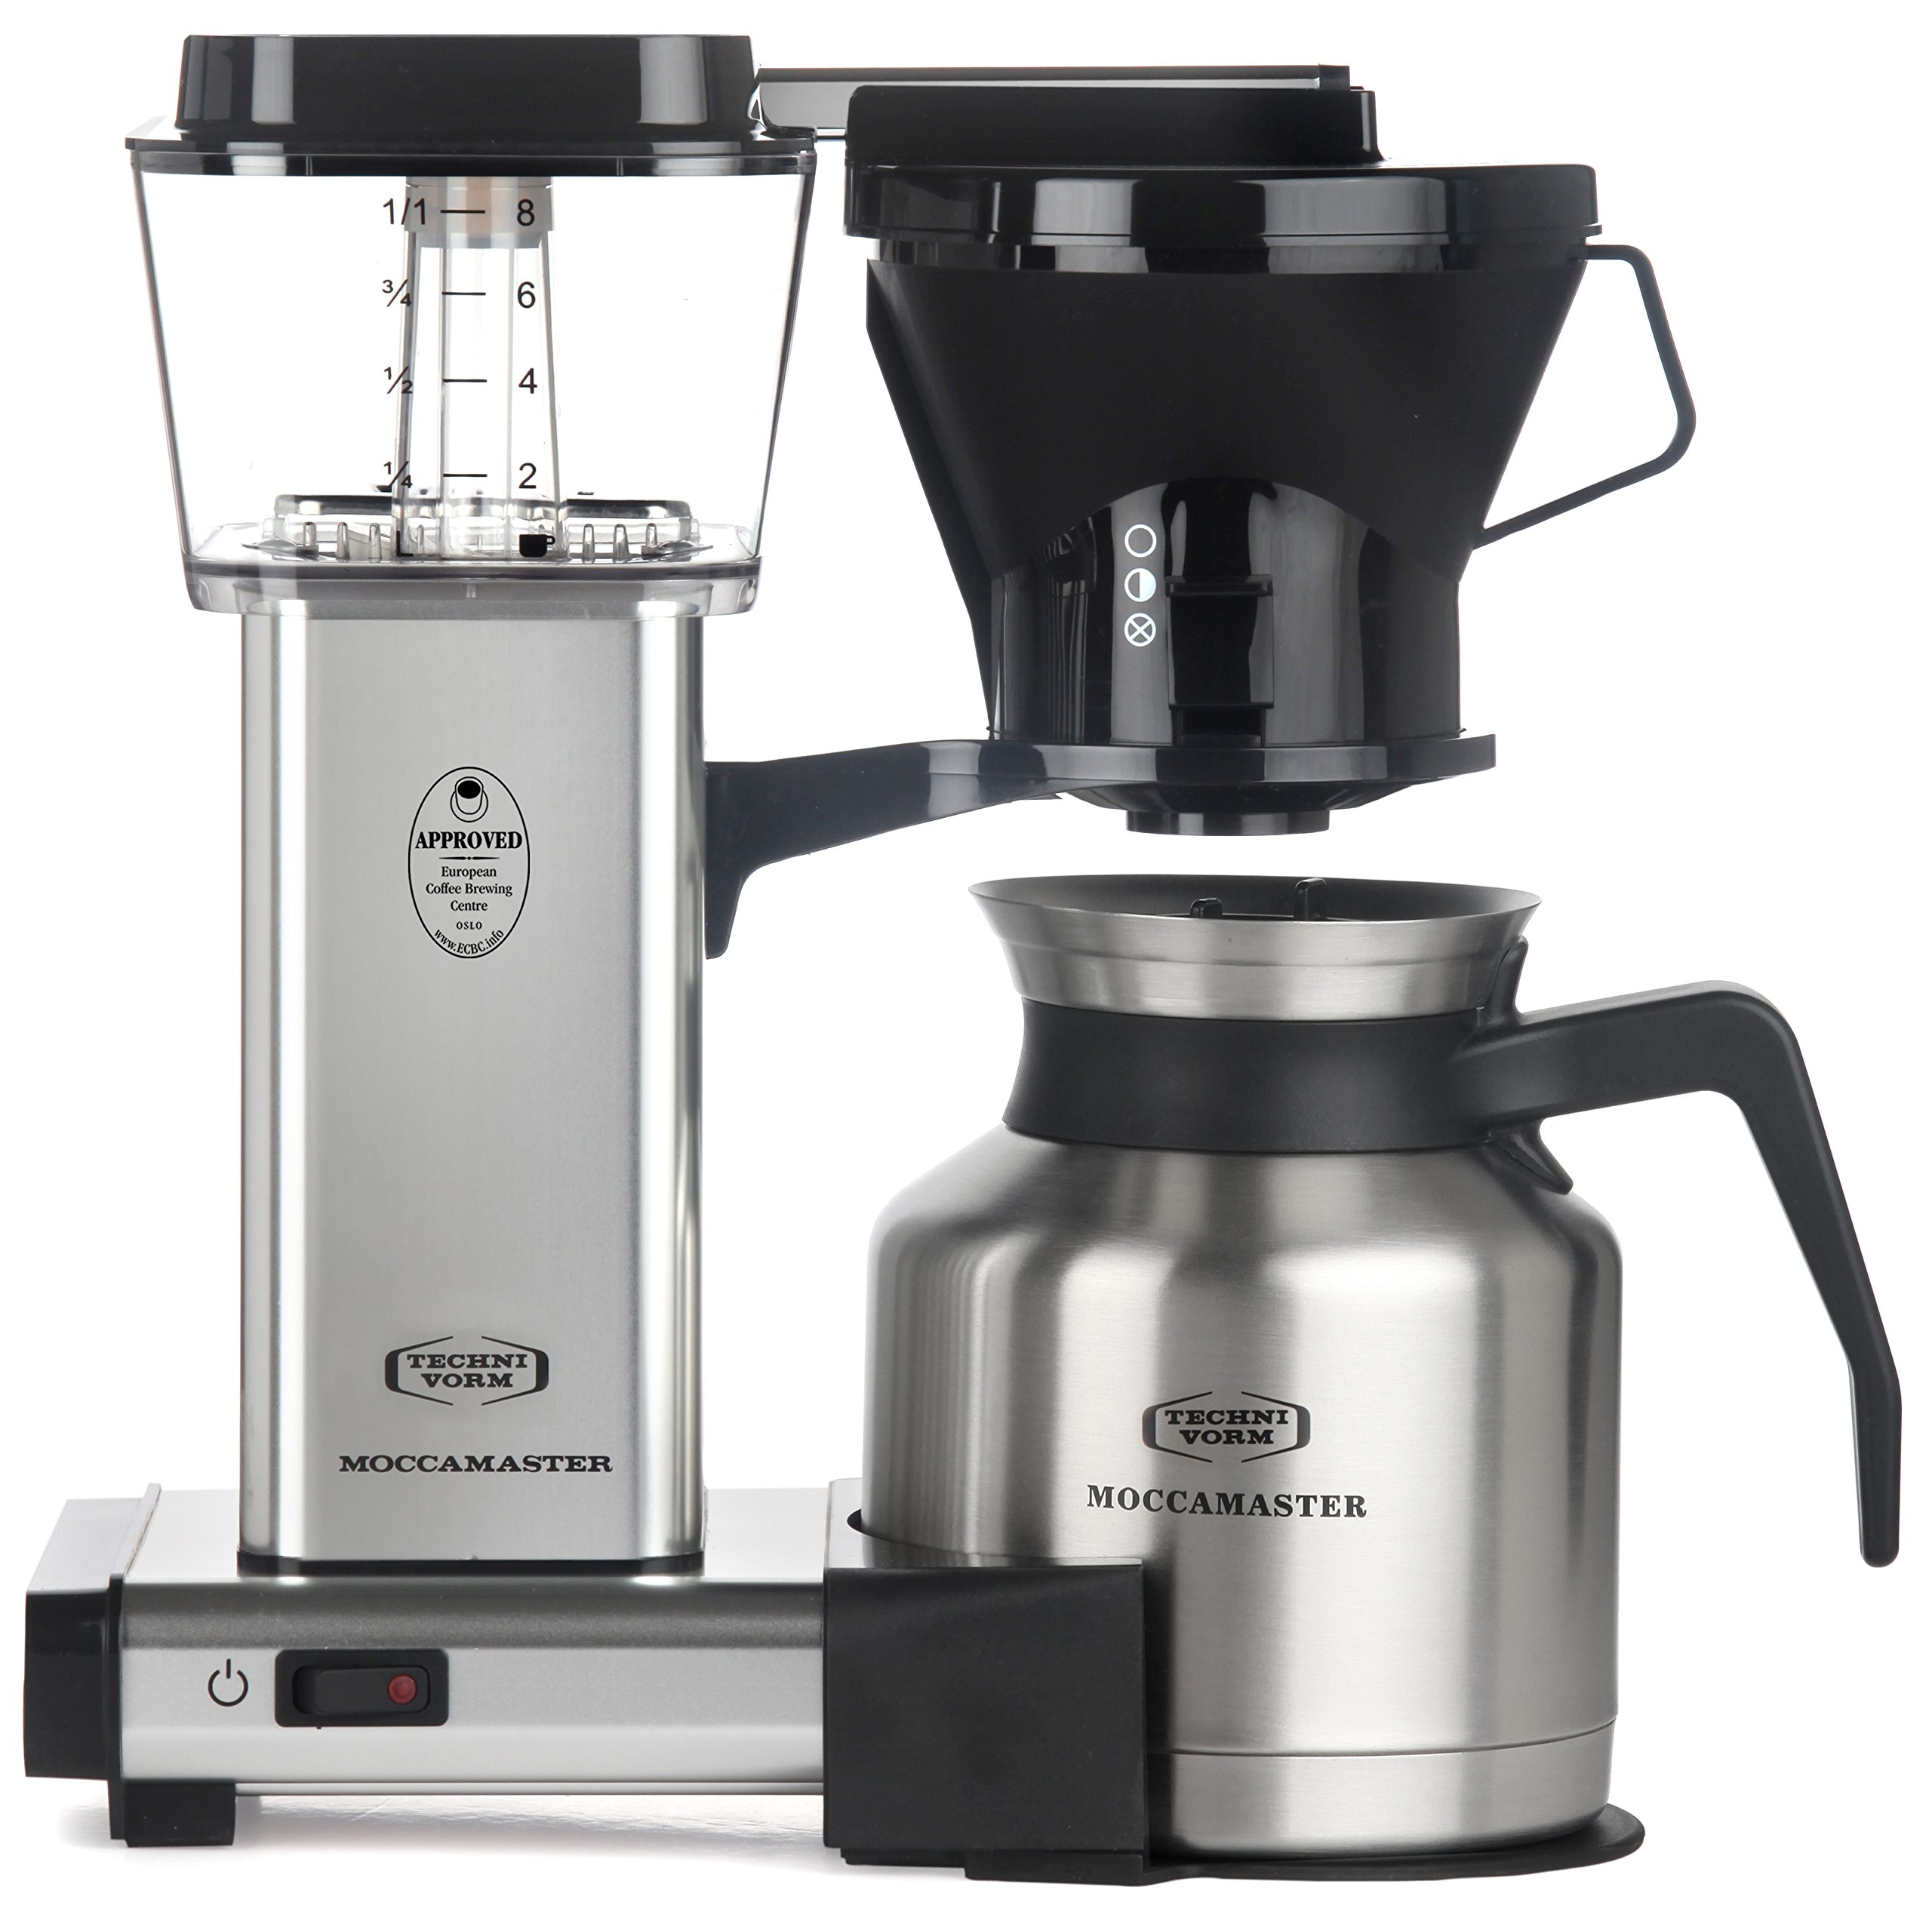 Moccamaster 79212 KBTS 8-Cup Coffee Brewer with Thermal Carafe, Polished Silver